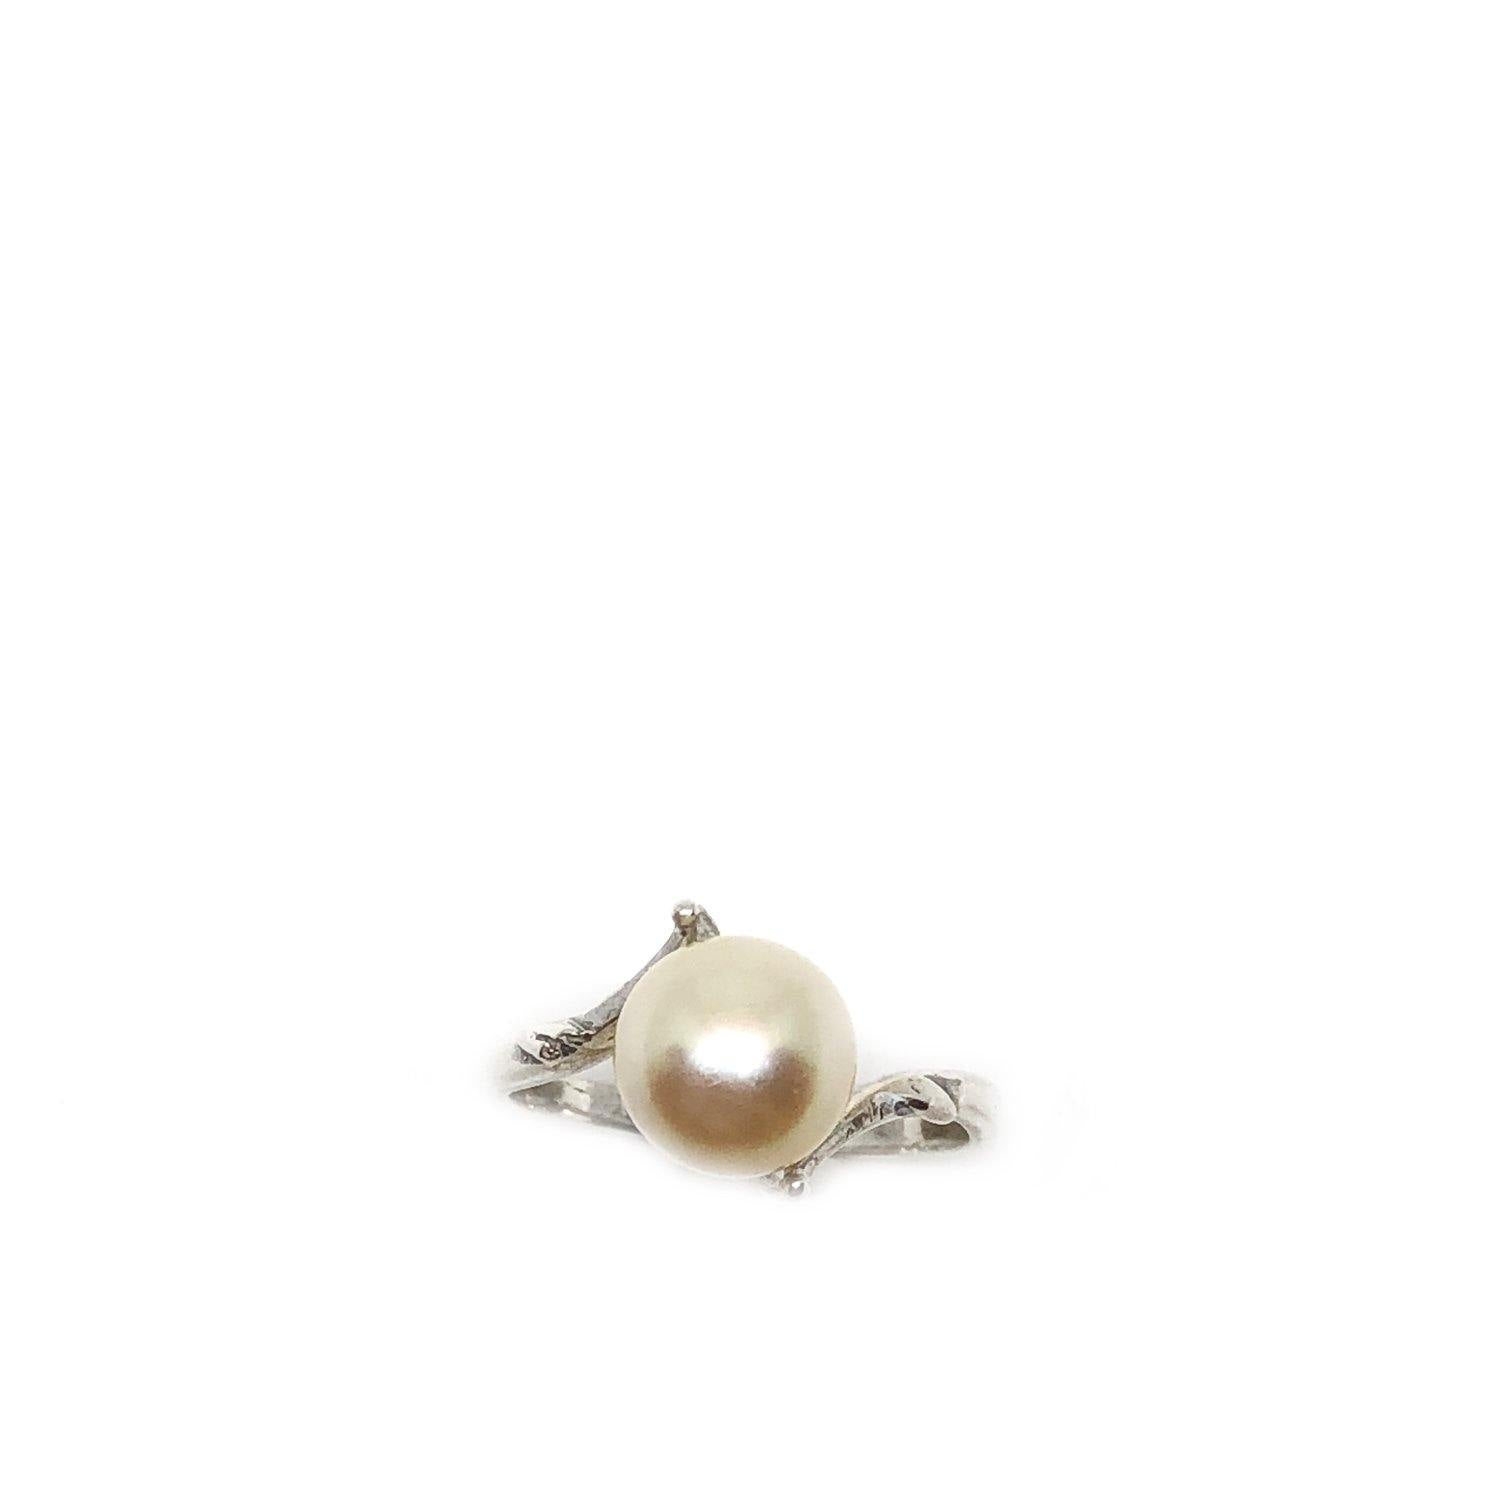 Petite Japanese Saltwater Cultured Yellow Akoya Pearl Ring- Sterling Silver Sz 4 1/2 - Vintage Valuable Pearls